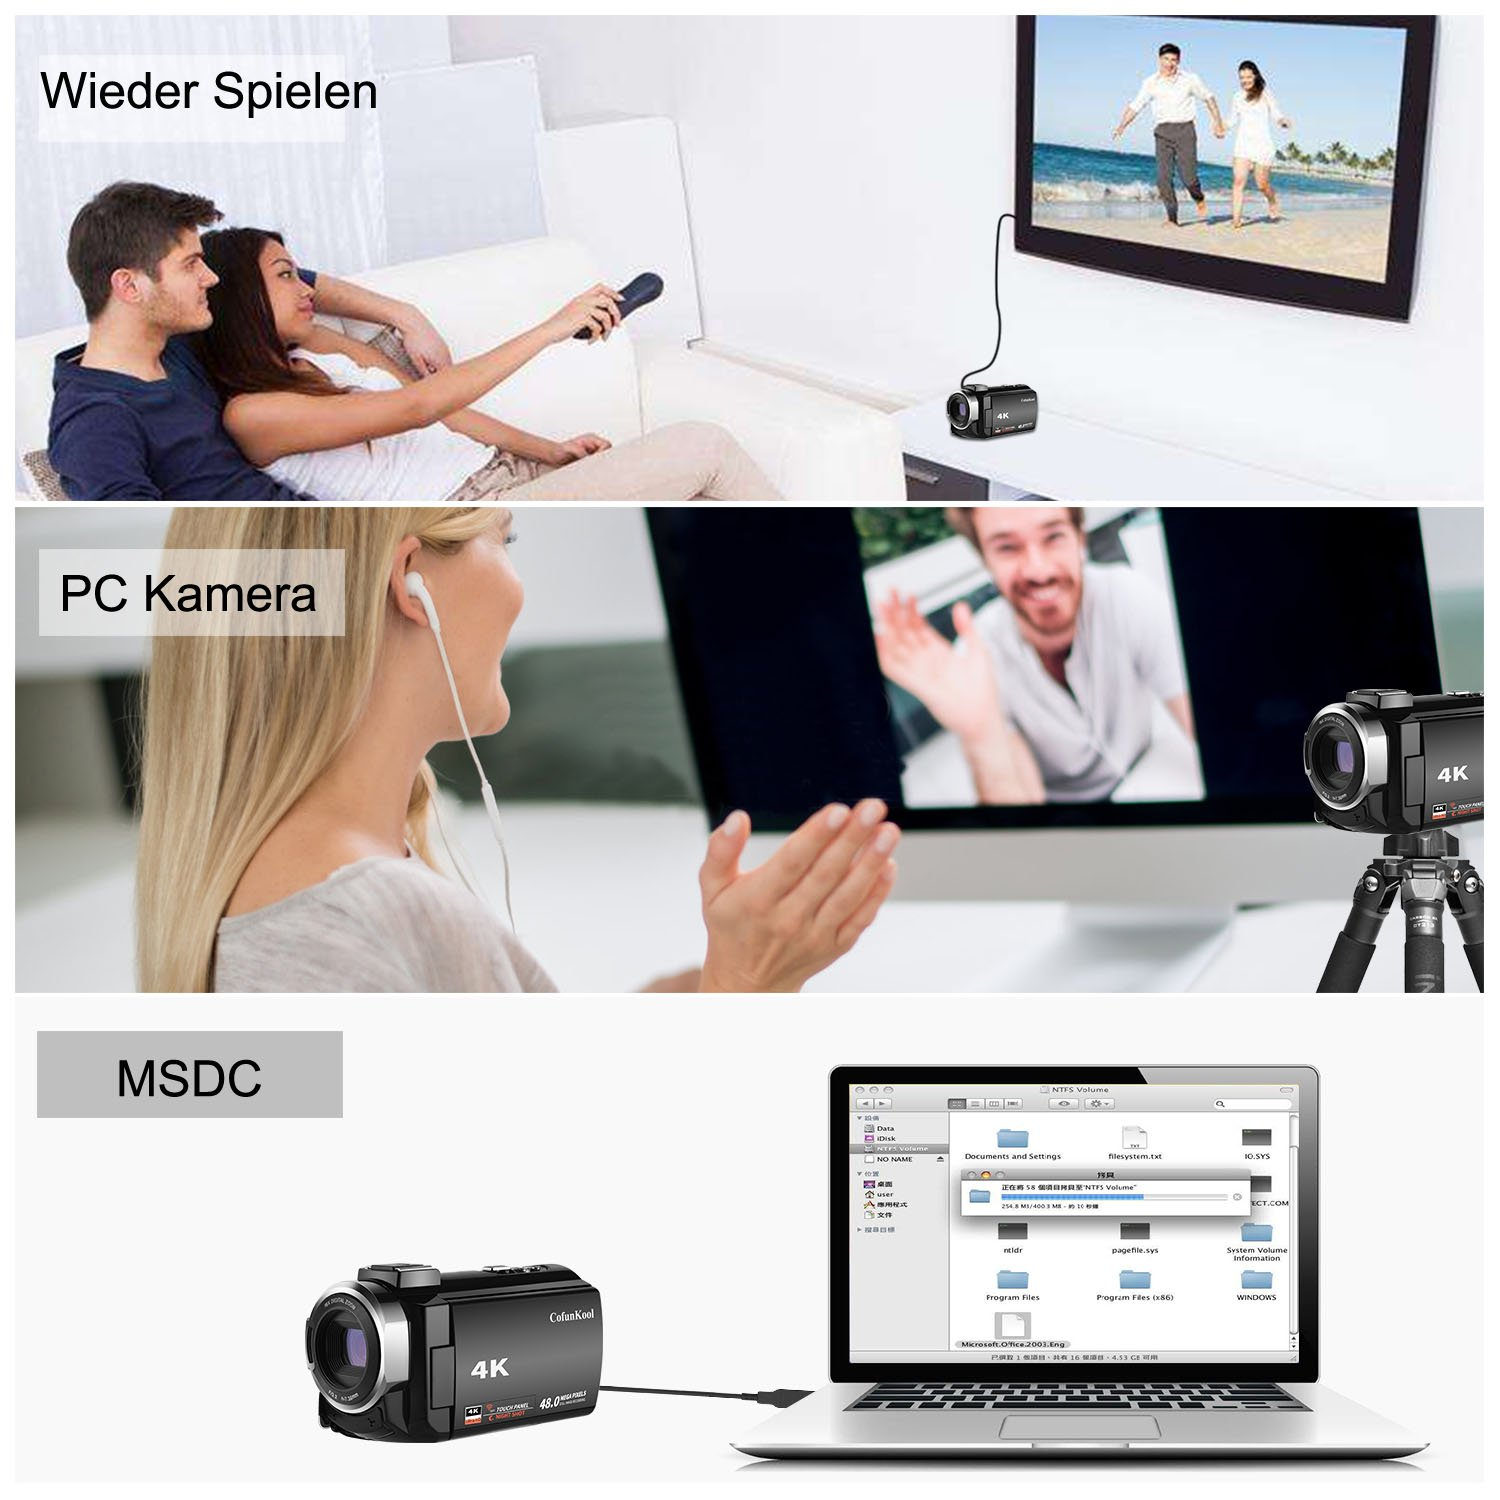 4K Camcorder 1080P 60FPS Videokamera Cofunkool WiFi 48MP 3.0 Zoll IPS Touchscreen Nachtsicht Digital Kamera mit LED Licht